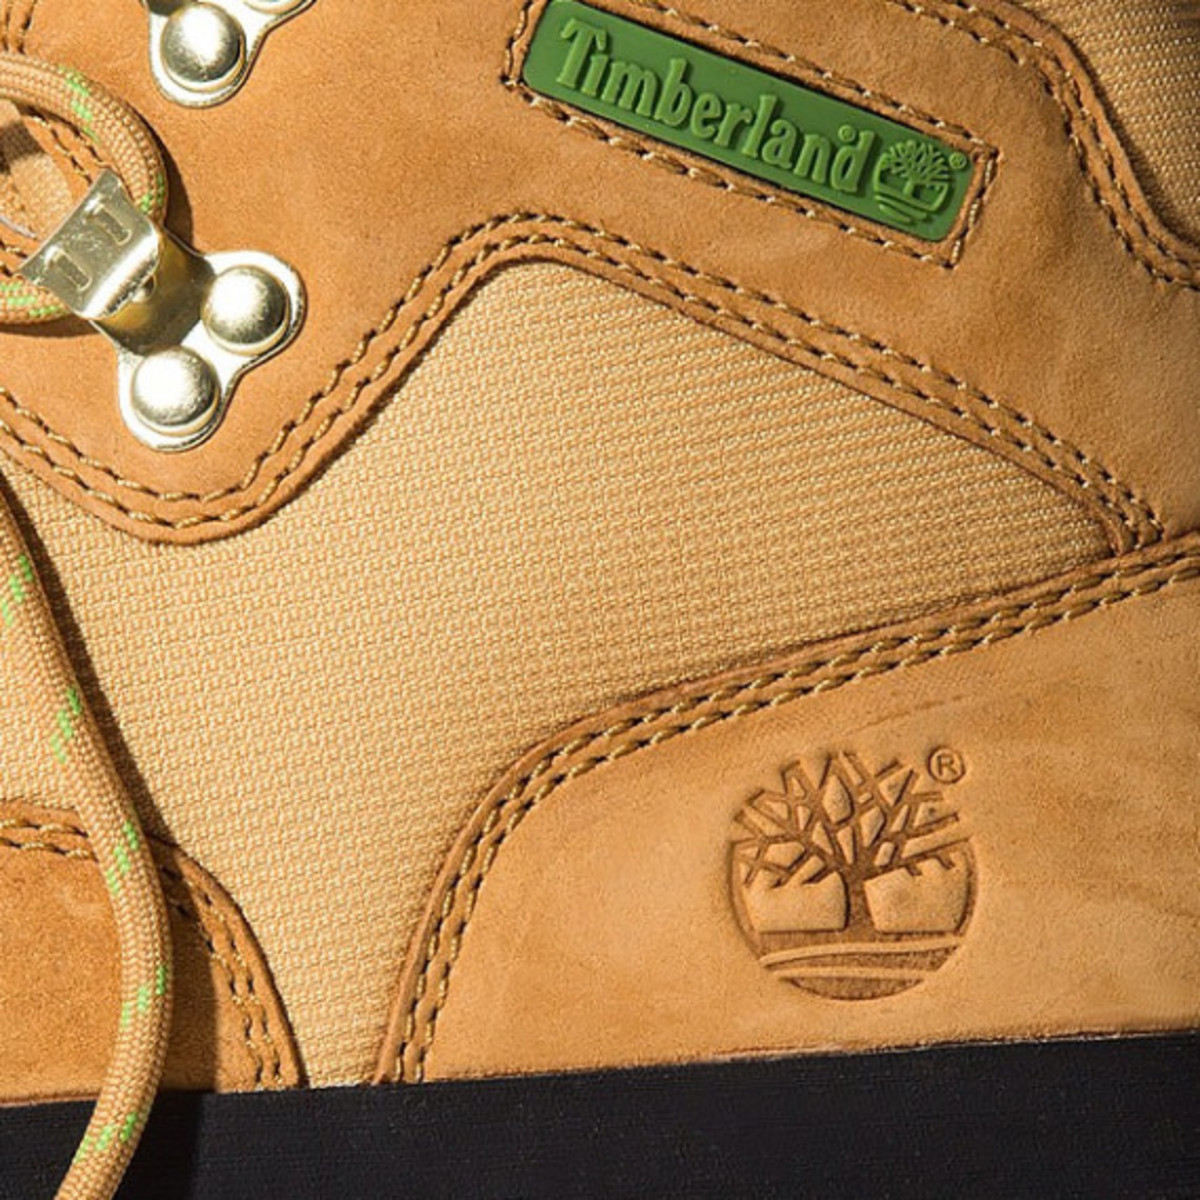 Stussy for Timberland - Euro Hiker Boots | Release Info - 2